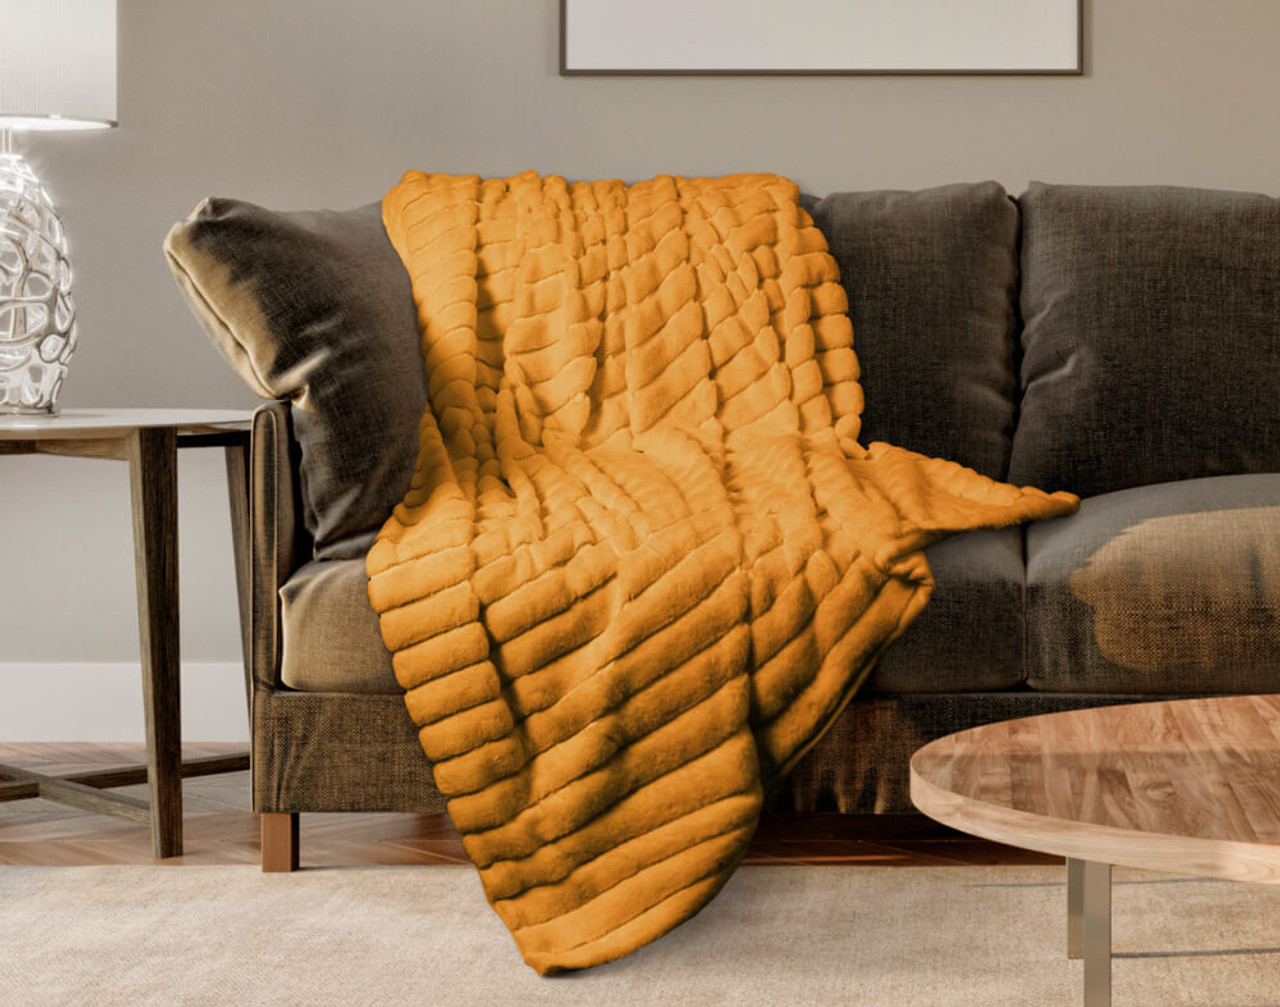 The Ribbed Faux Fur Throw in Honey, a warm orange, draped over a couch.